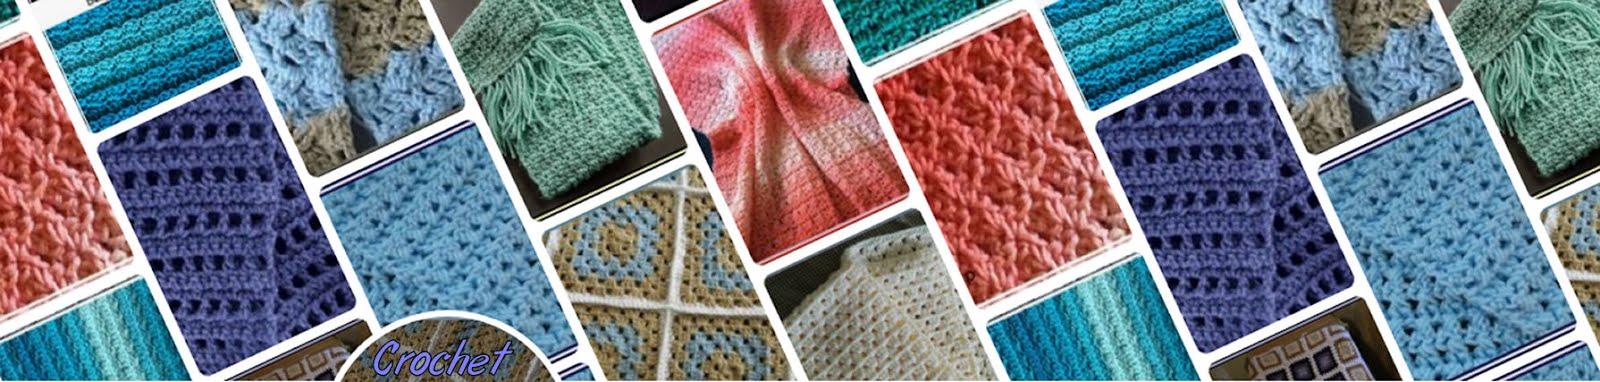 Heather's Crochet Designs